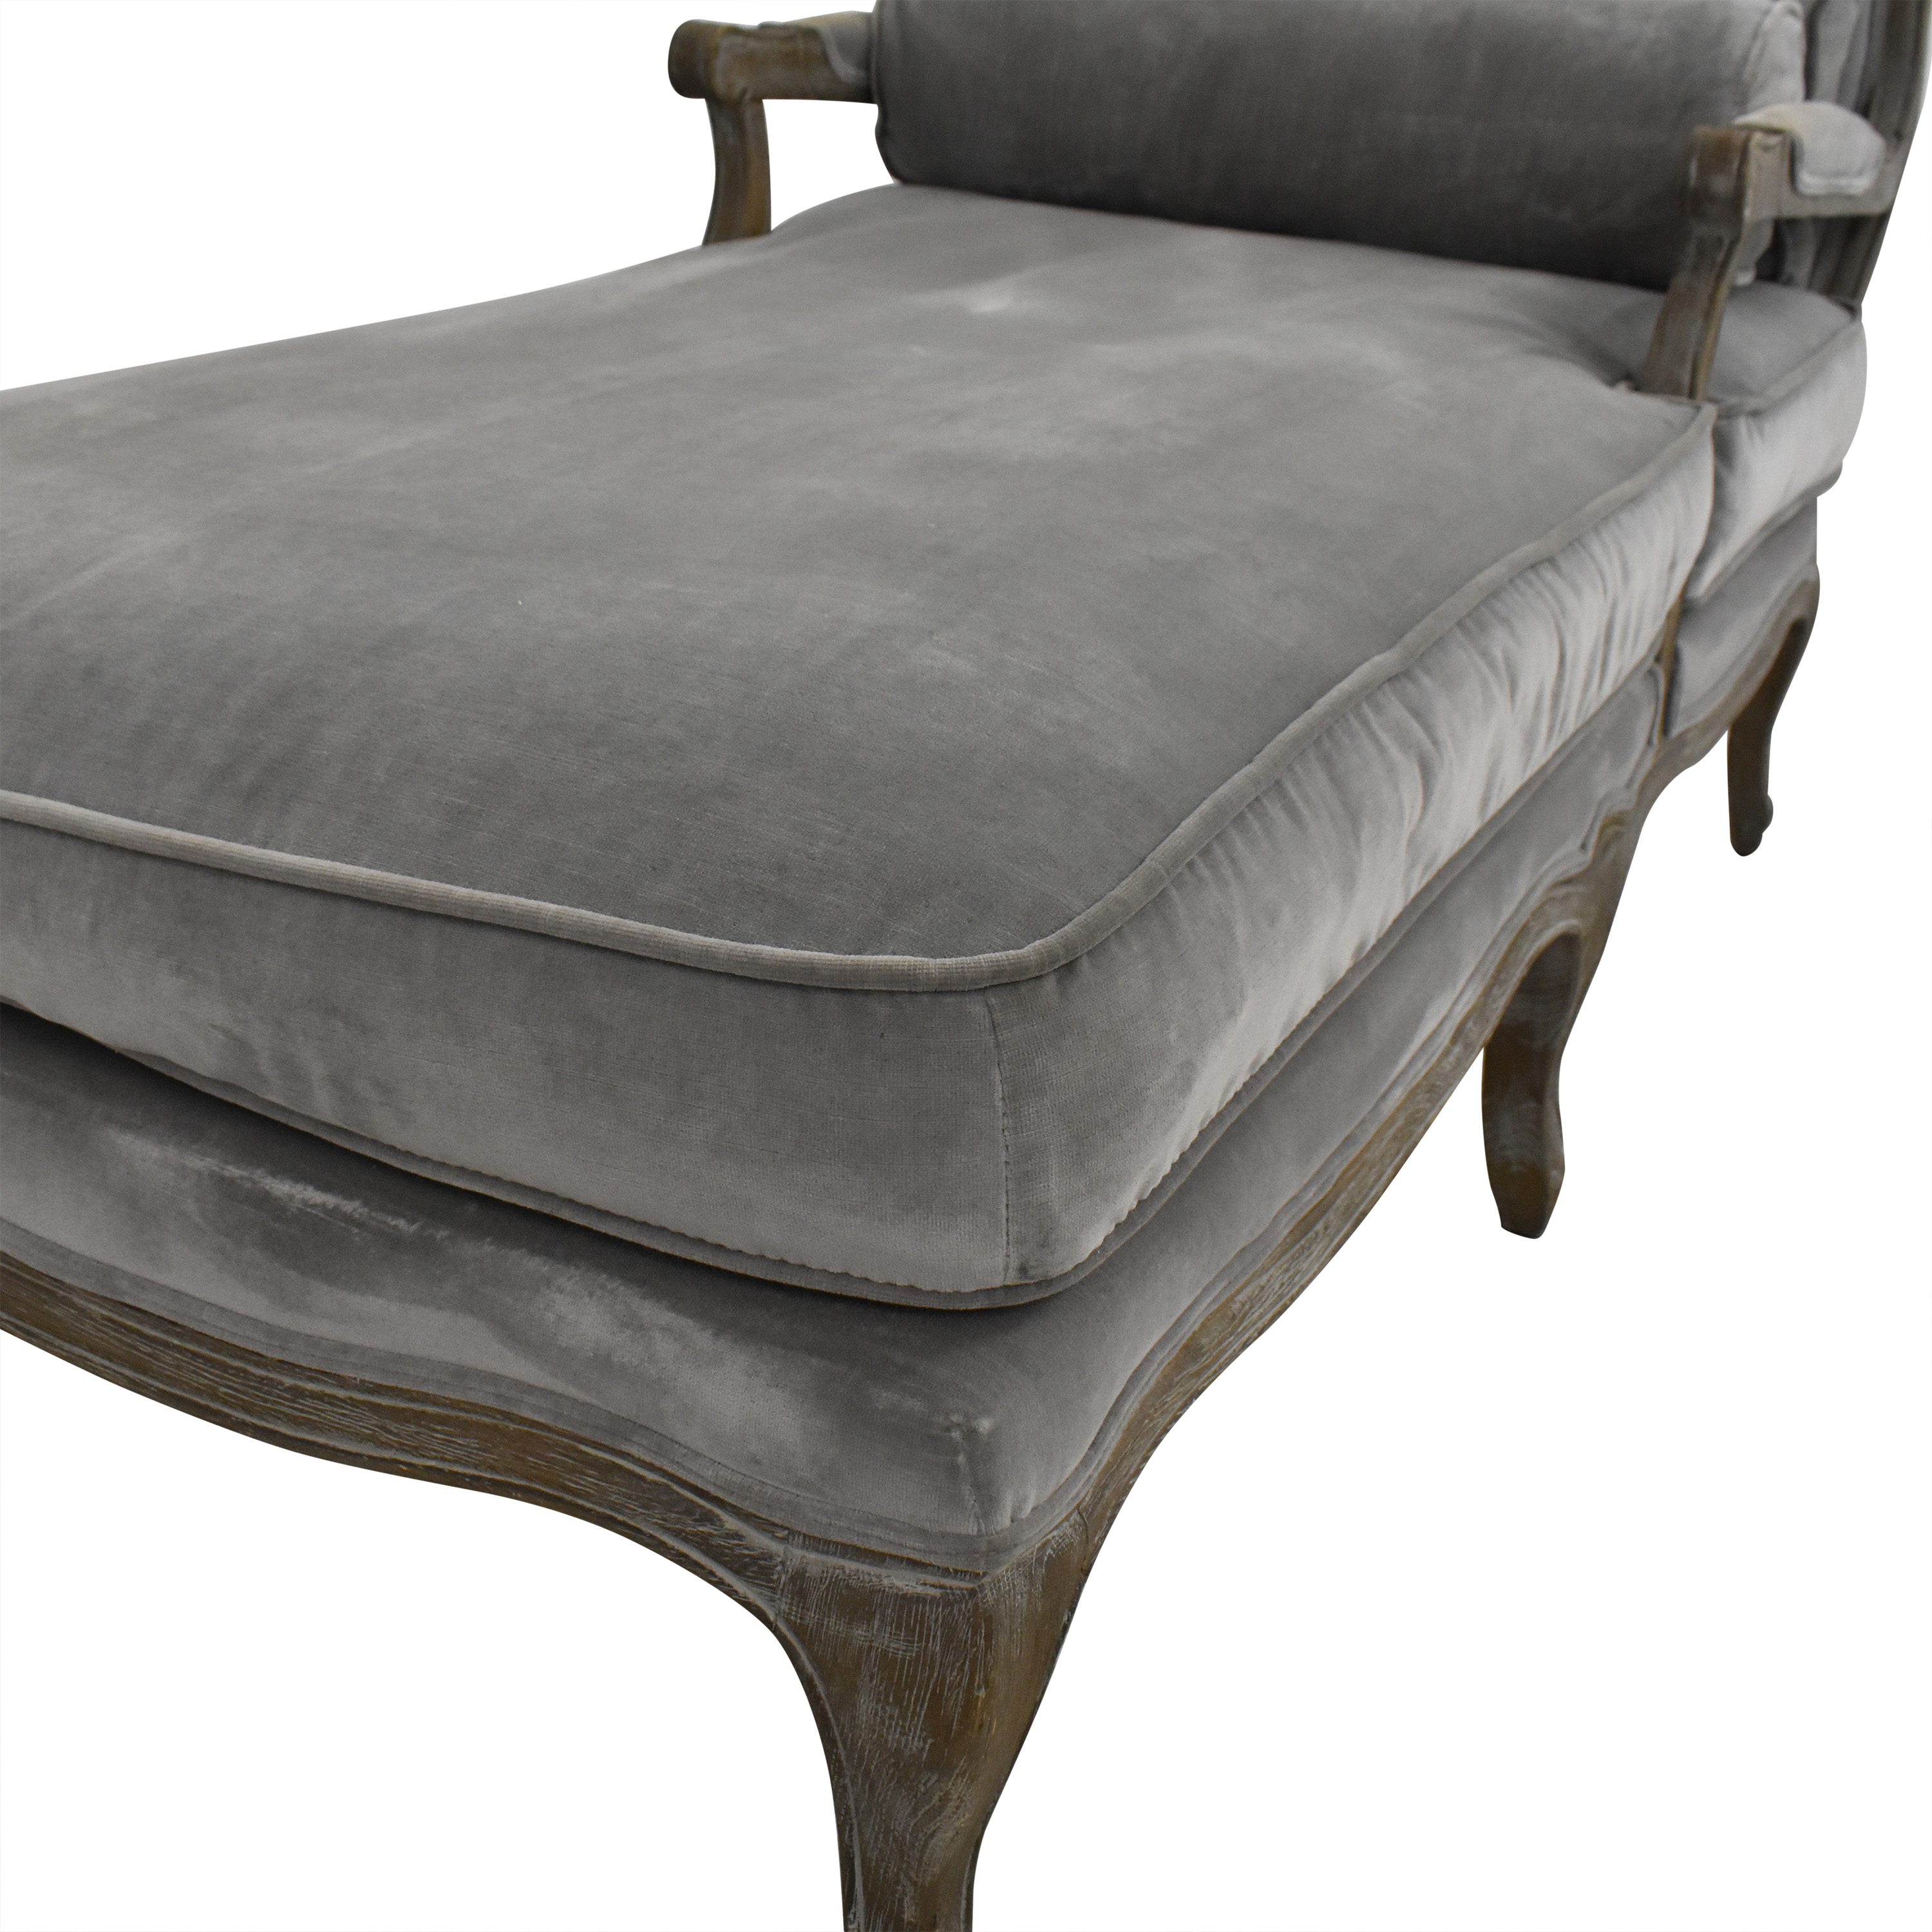 buy Restoration Hardware Chaise Lounge with Cushion Restoration Hardware Chaises